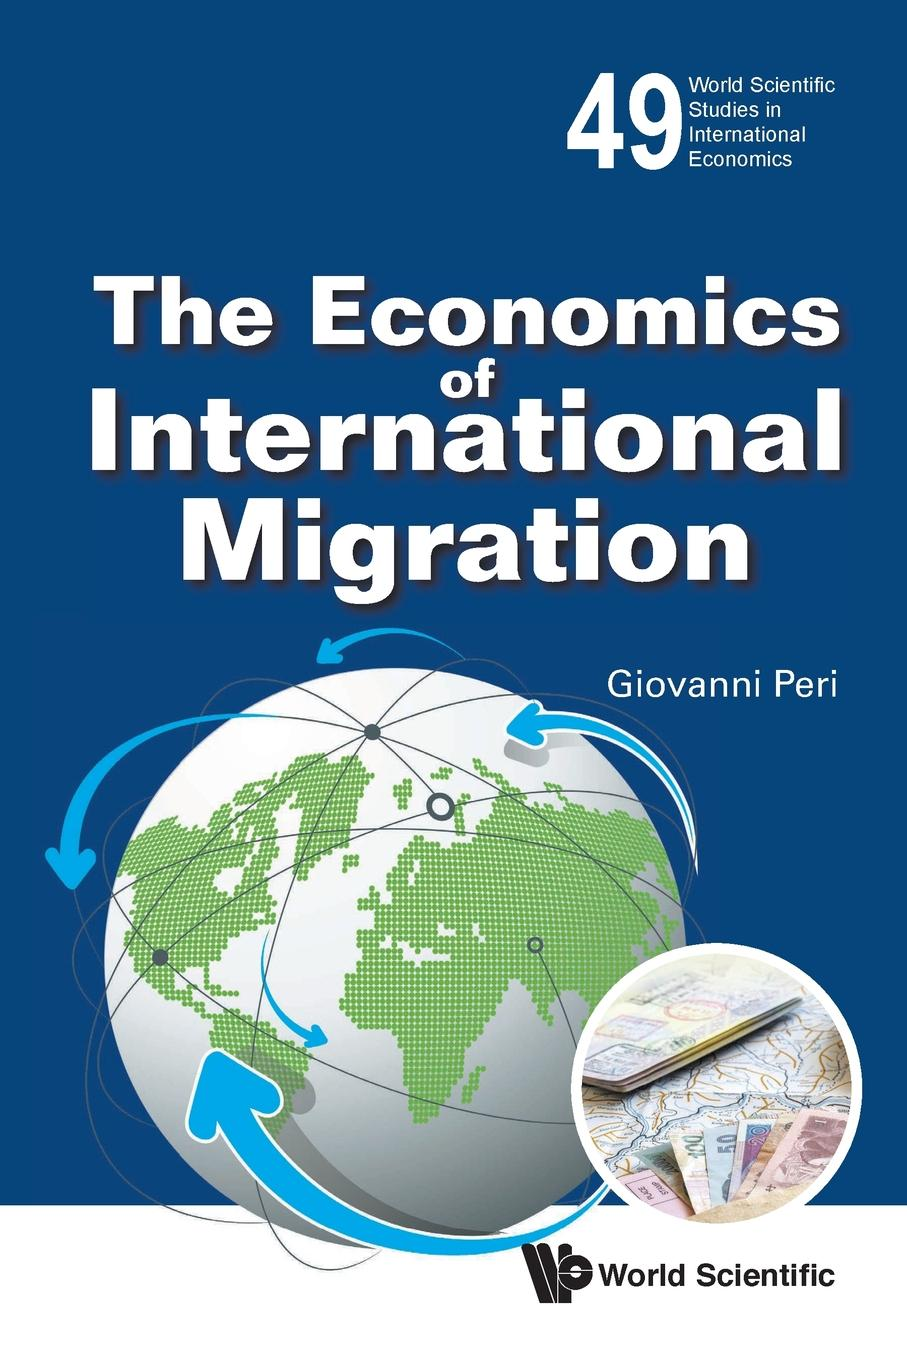 Giovanni Peri ECONOMICS OF INTERNATIONAL MIGRATION, THE jerald pinto e economics for investment decision makers workbook micro macro and international economics